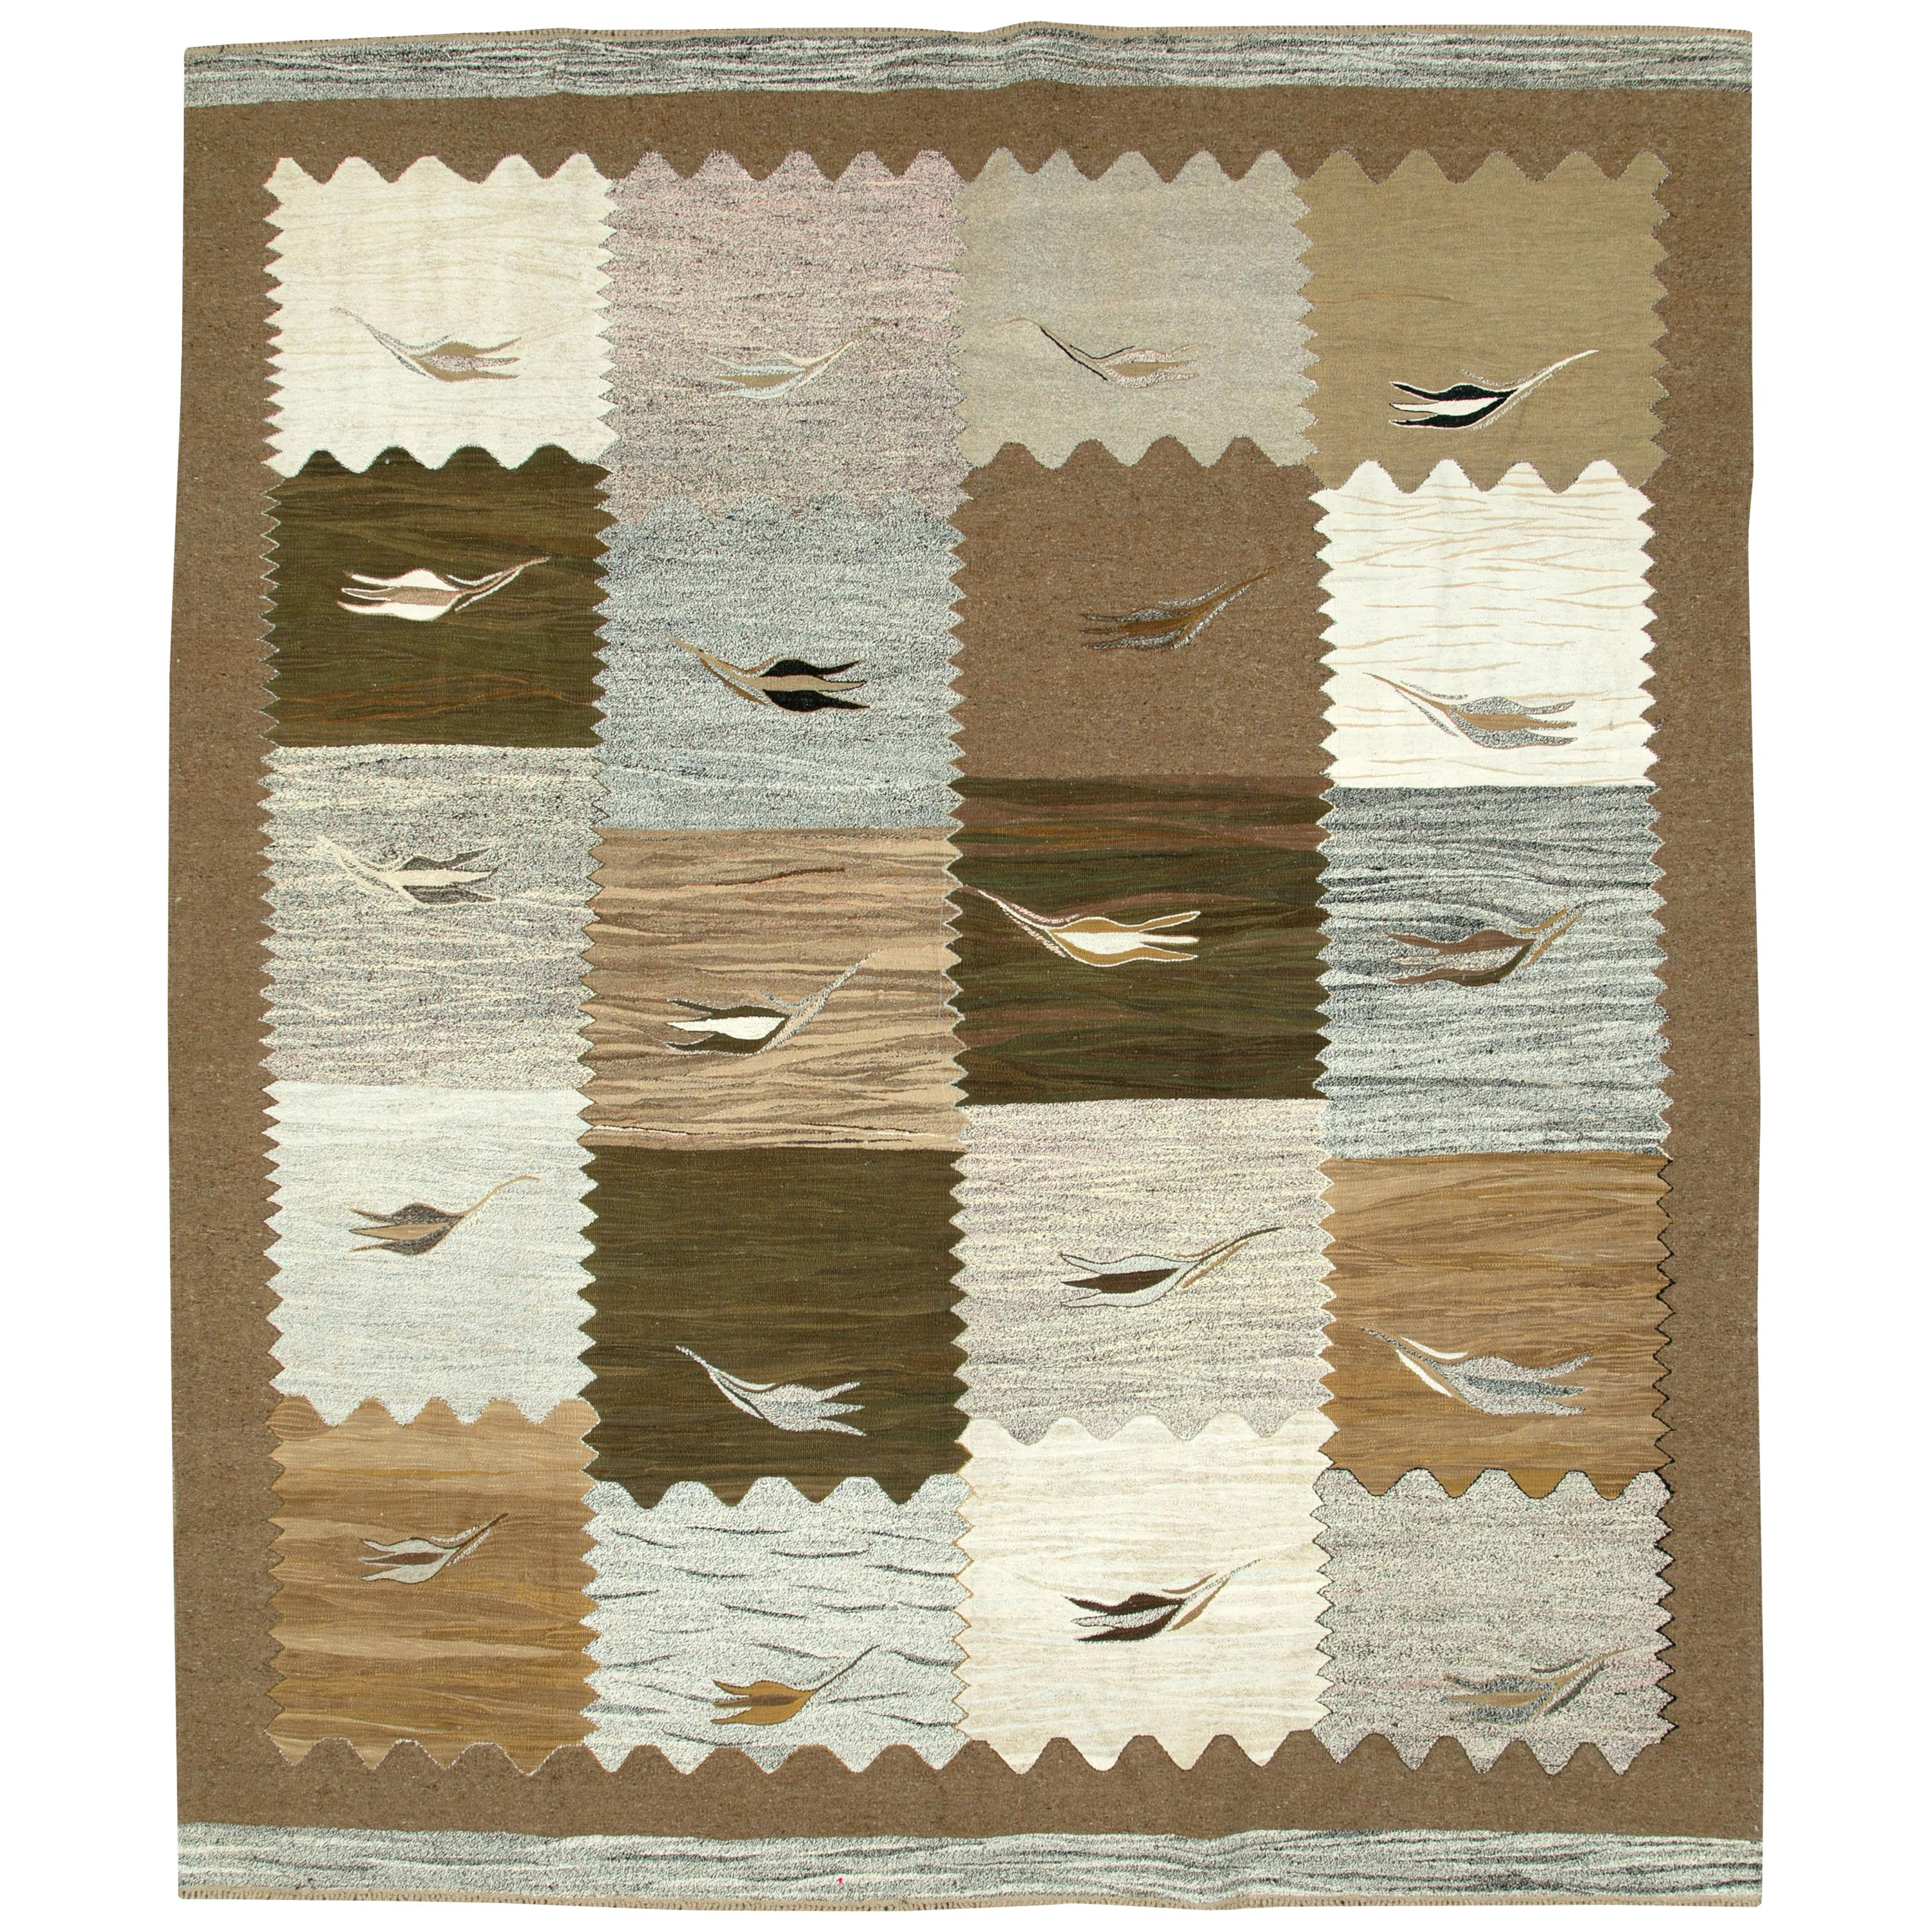 Contemporary Swedish Inspired Flat-Weave Kilim Room Size Area Rug